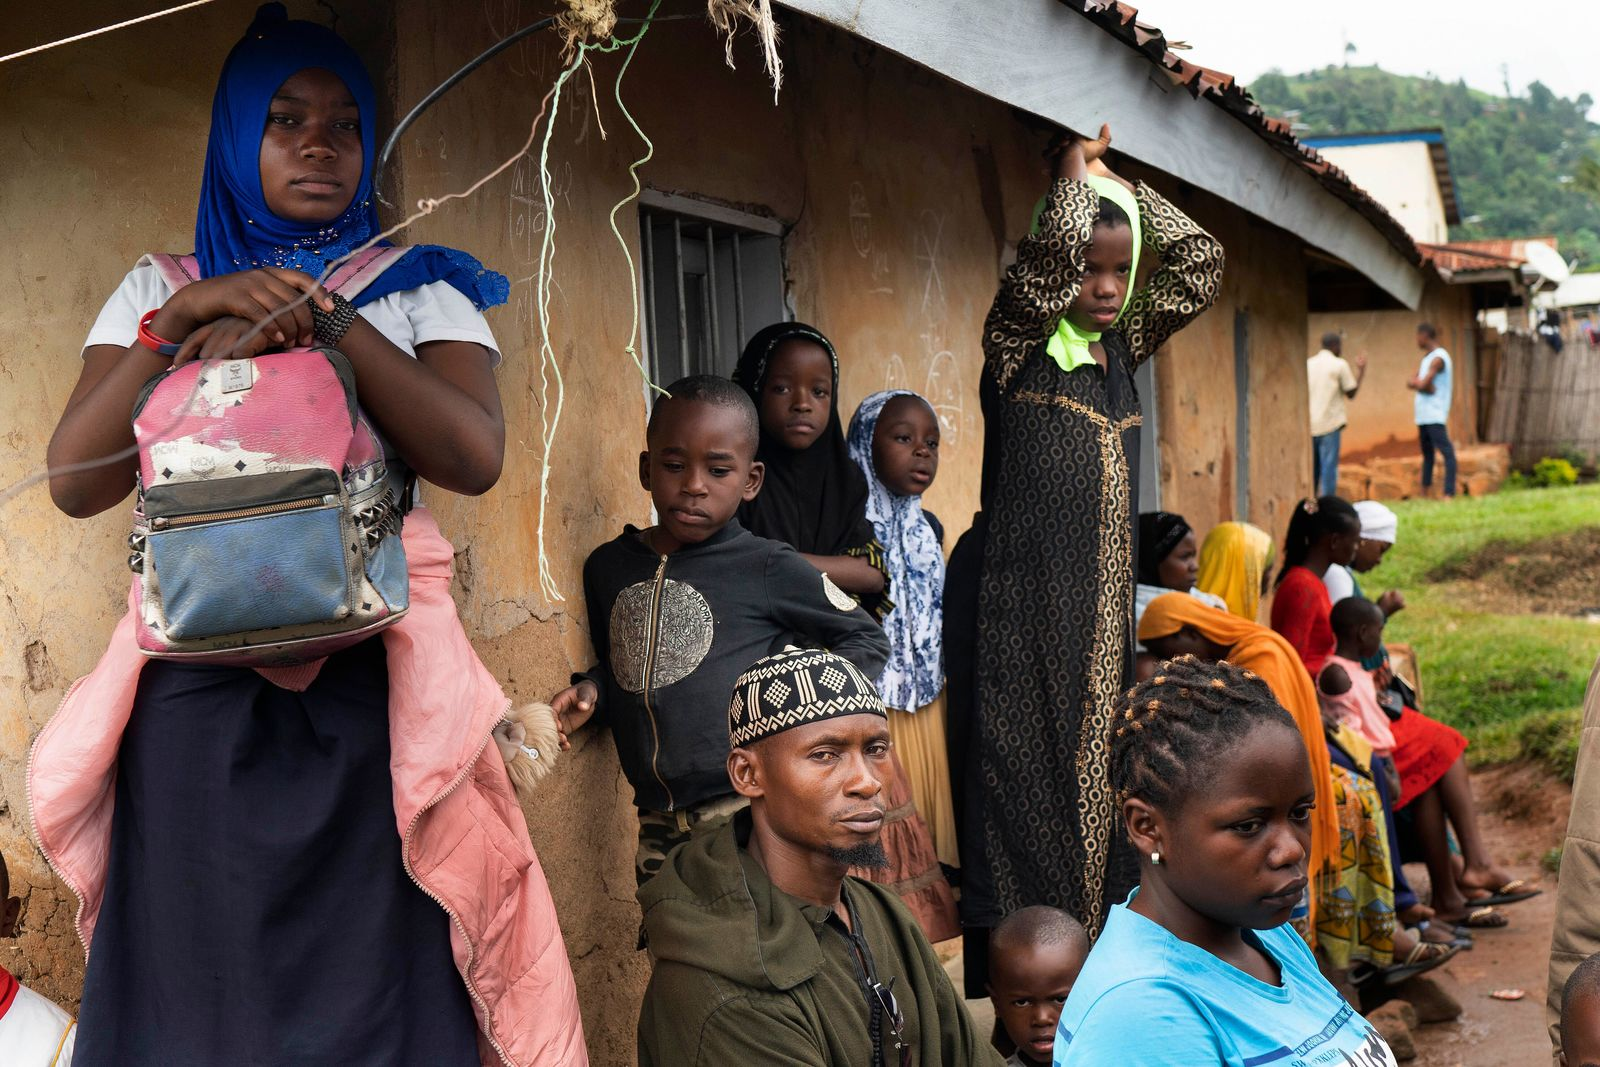 In this photograph taken Saturday July 13, 2019, residents wait in line to receive the Ebola vaccine in Beni, Congo DRC. The head of the World Health Organization is convening a meeting of experts Wednesday July 17, 2019 to decide whether the Ebola outbreak should be declared an international emergency after spreading to eastern Congo's biggest city, Goma, this week. More than 1,600 people in eastern Congo have died as the virus has spread in areas too dangerous for health teams to access. (AP Photo/Jerome Delay)